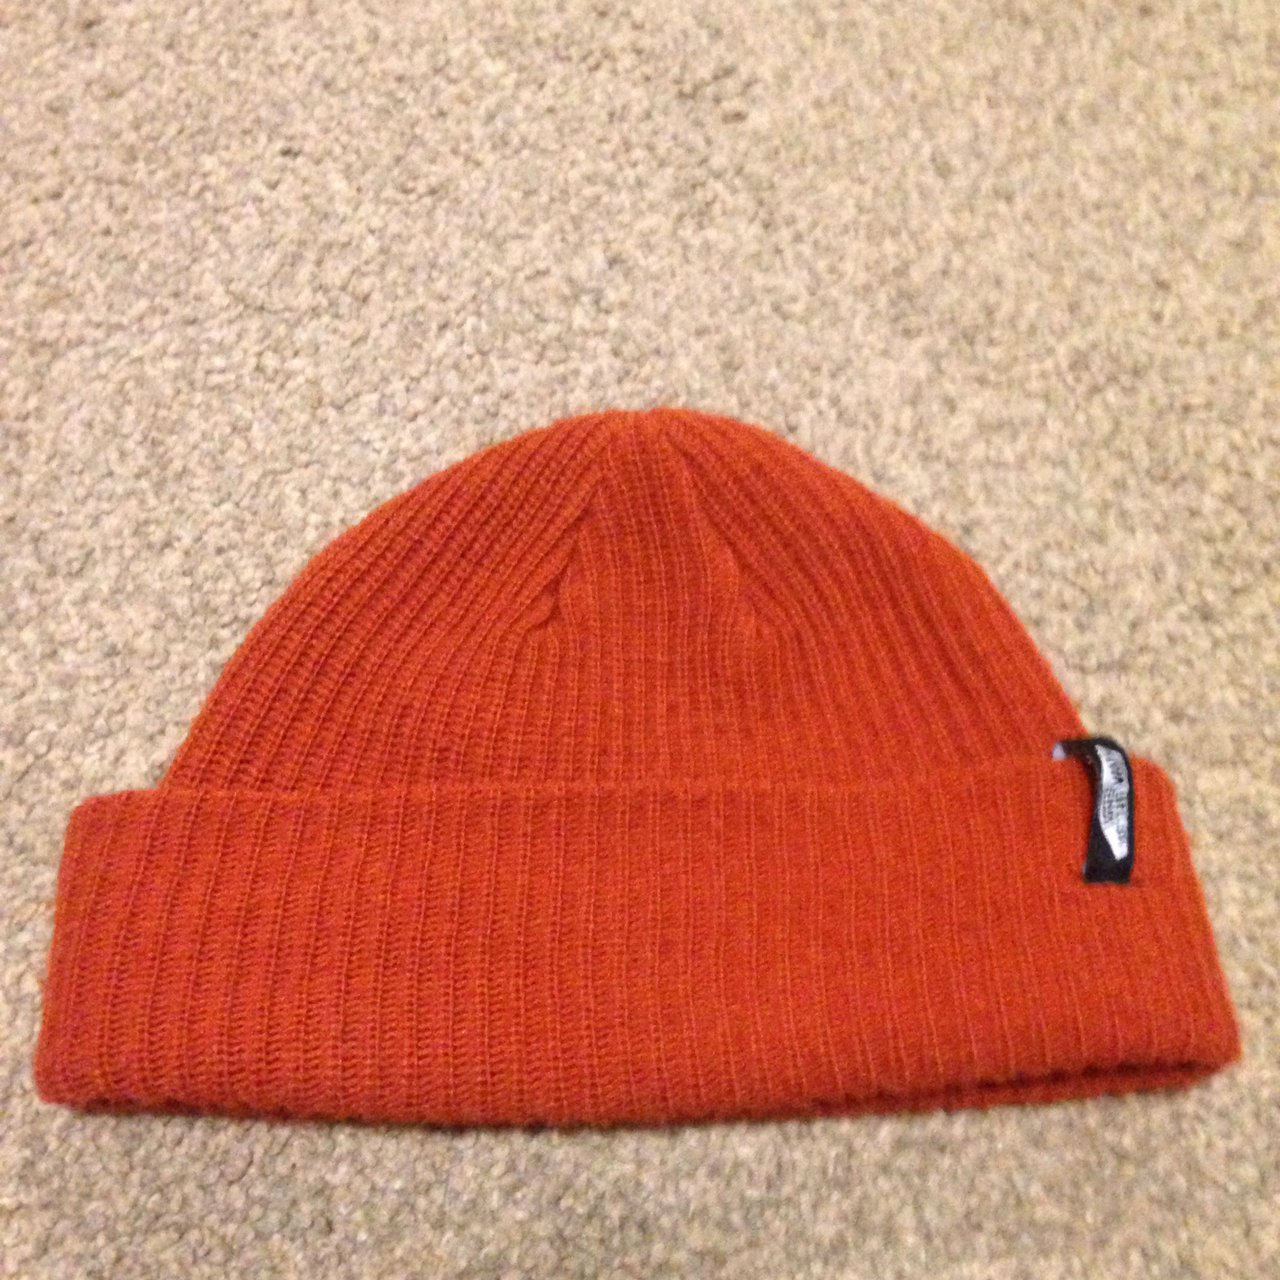 6ef24a5a535c6 Vans fisherman beanie Burnt orange colour - Depop